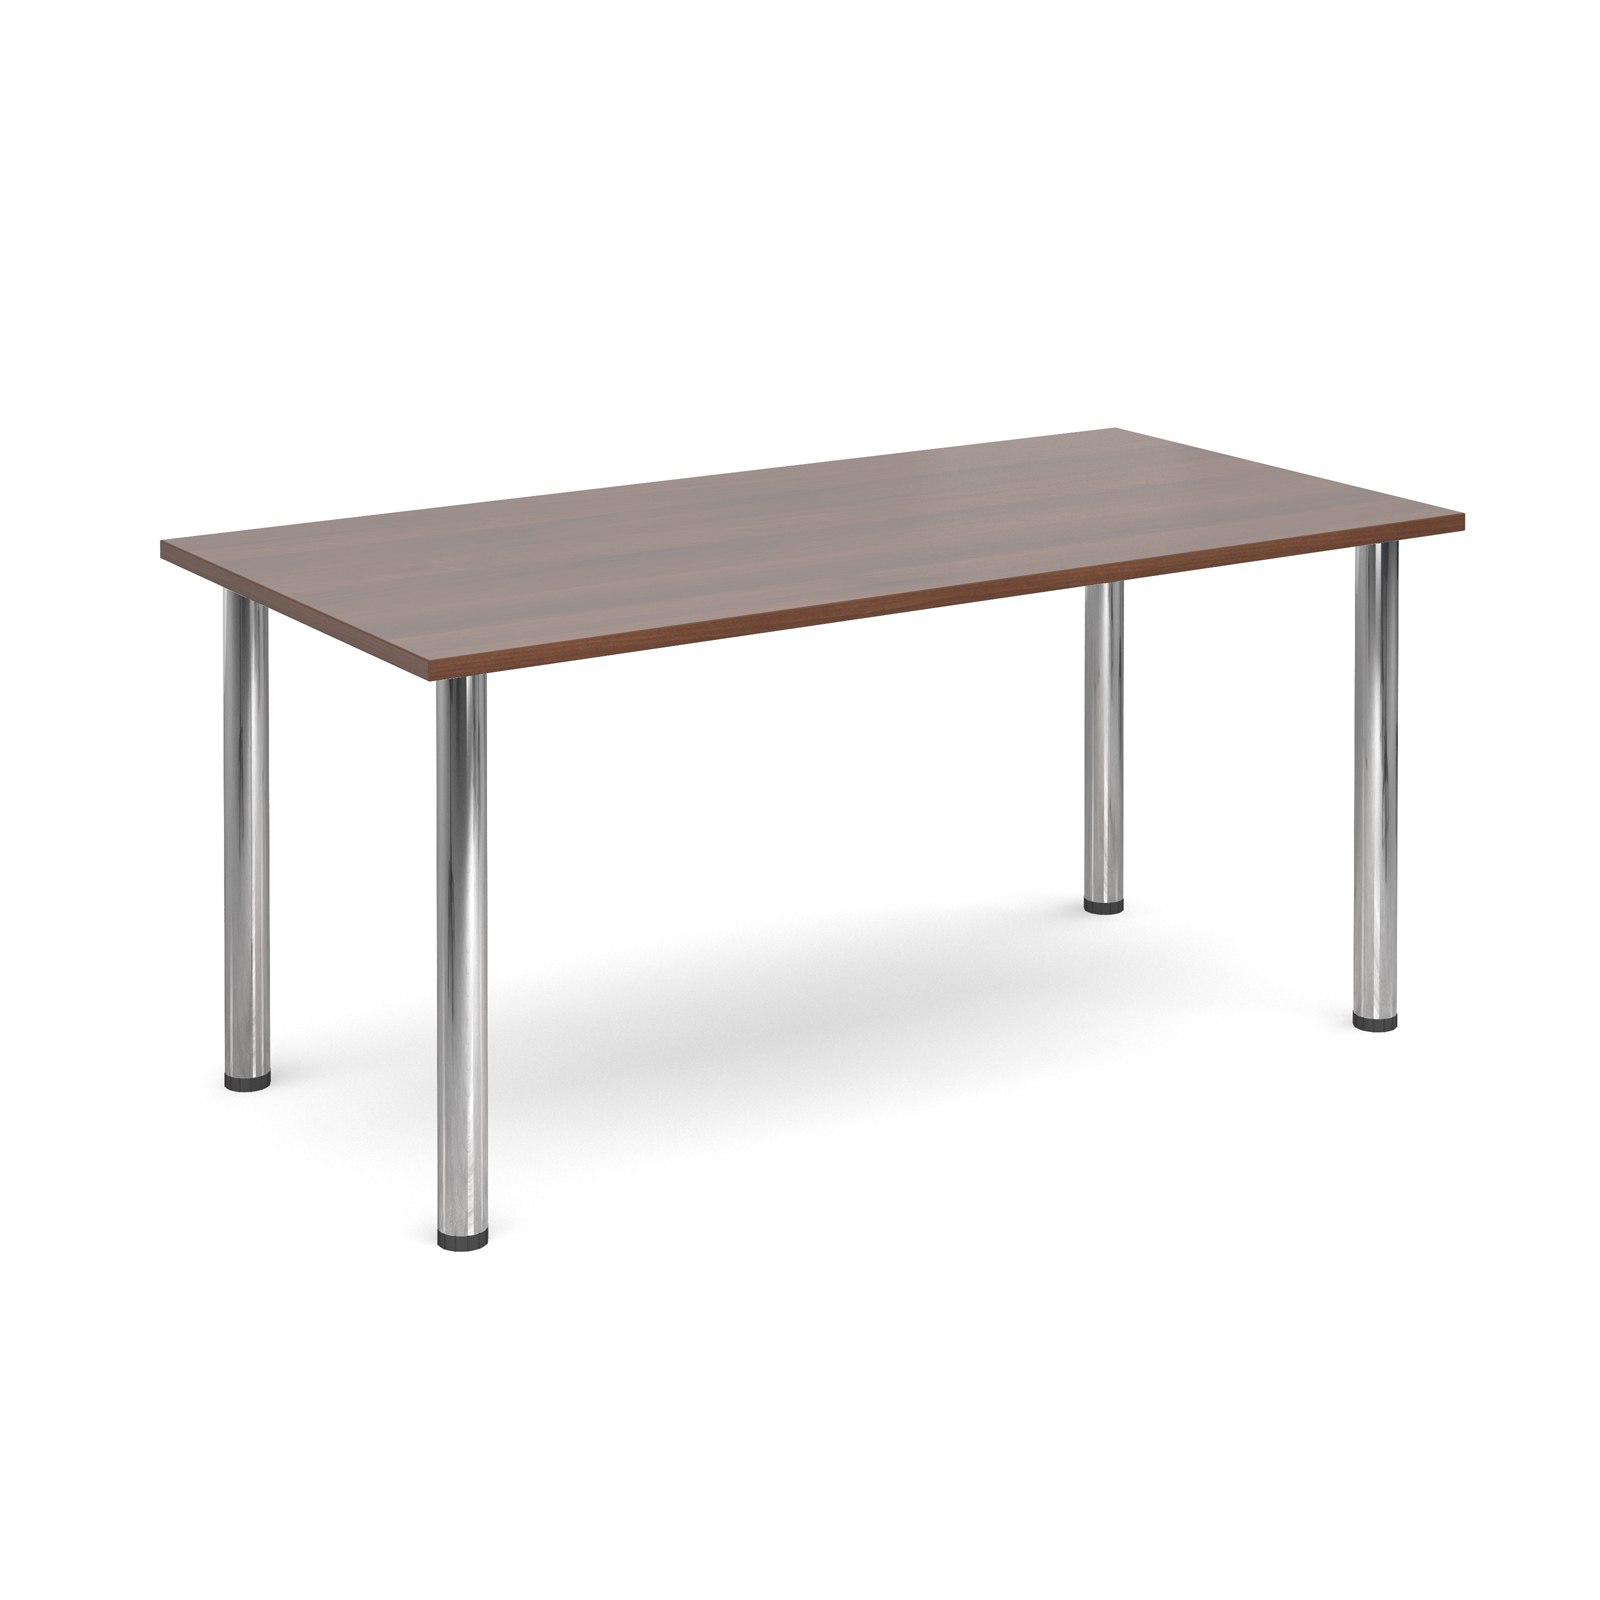 Rectangular deluxe chrome radial leg table 1600mm x 800mm - walnut